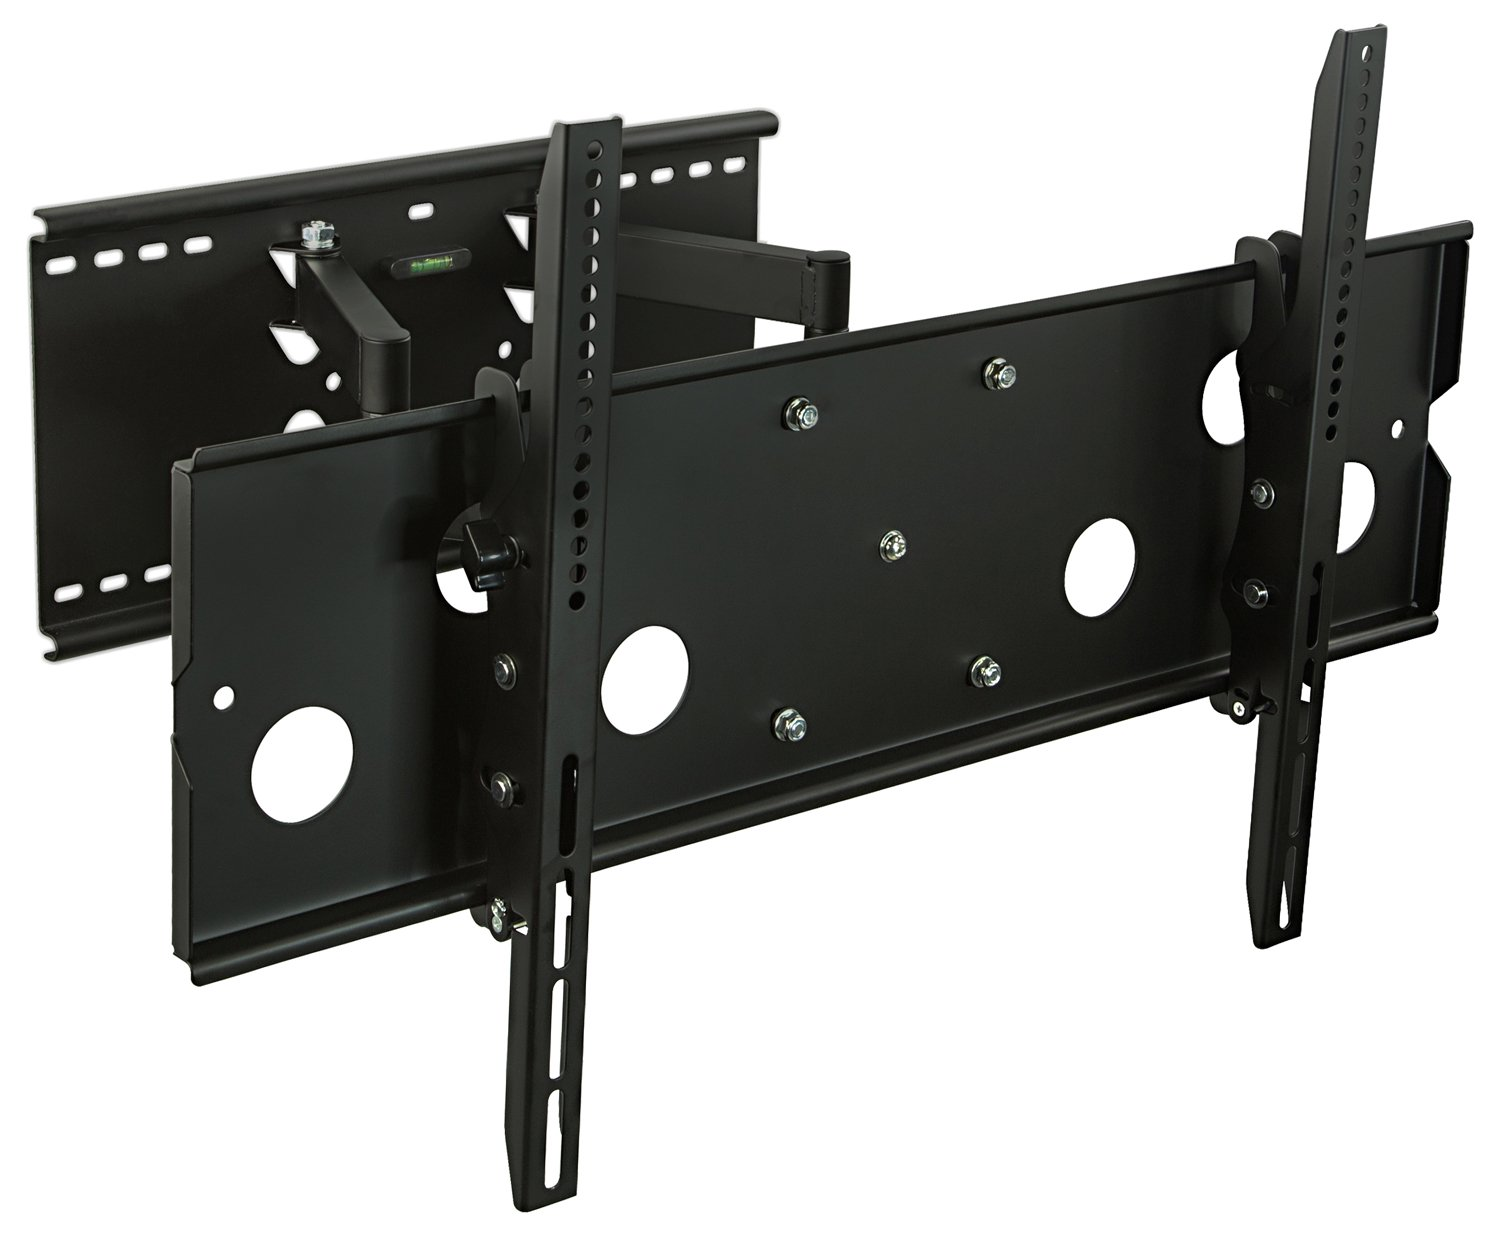 MI-310B24 Articulating Dual Arm TV Wall Mount for 32-60-inch LCD, Plasma  and LED TVs with extended back plate suitable with 24